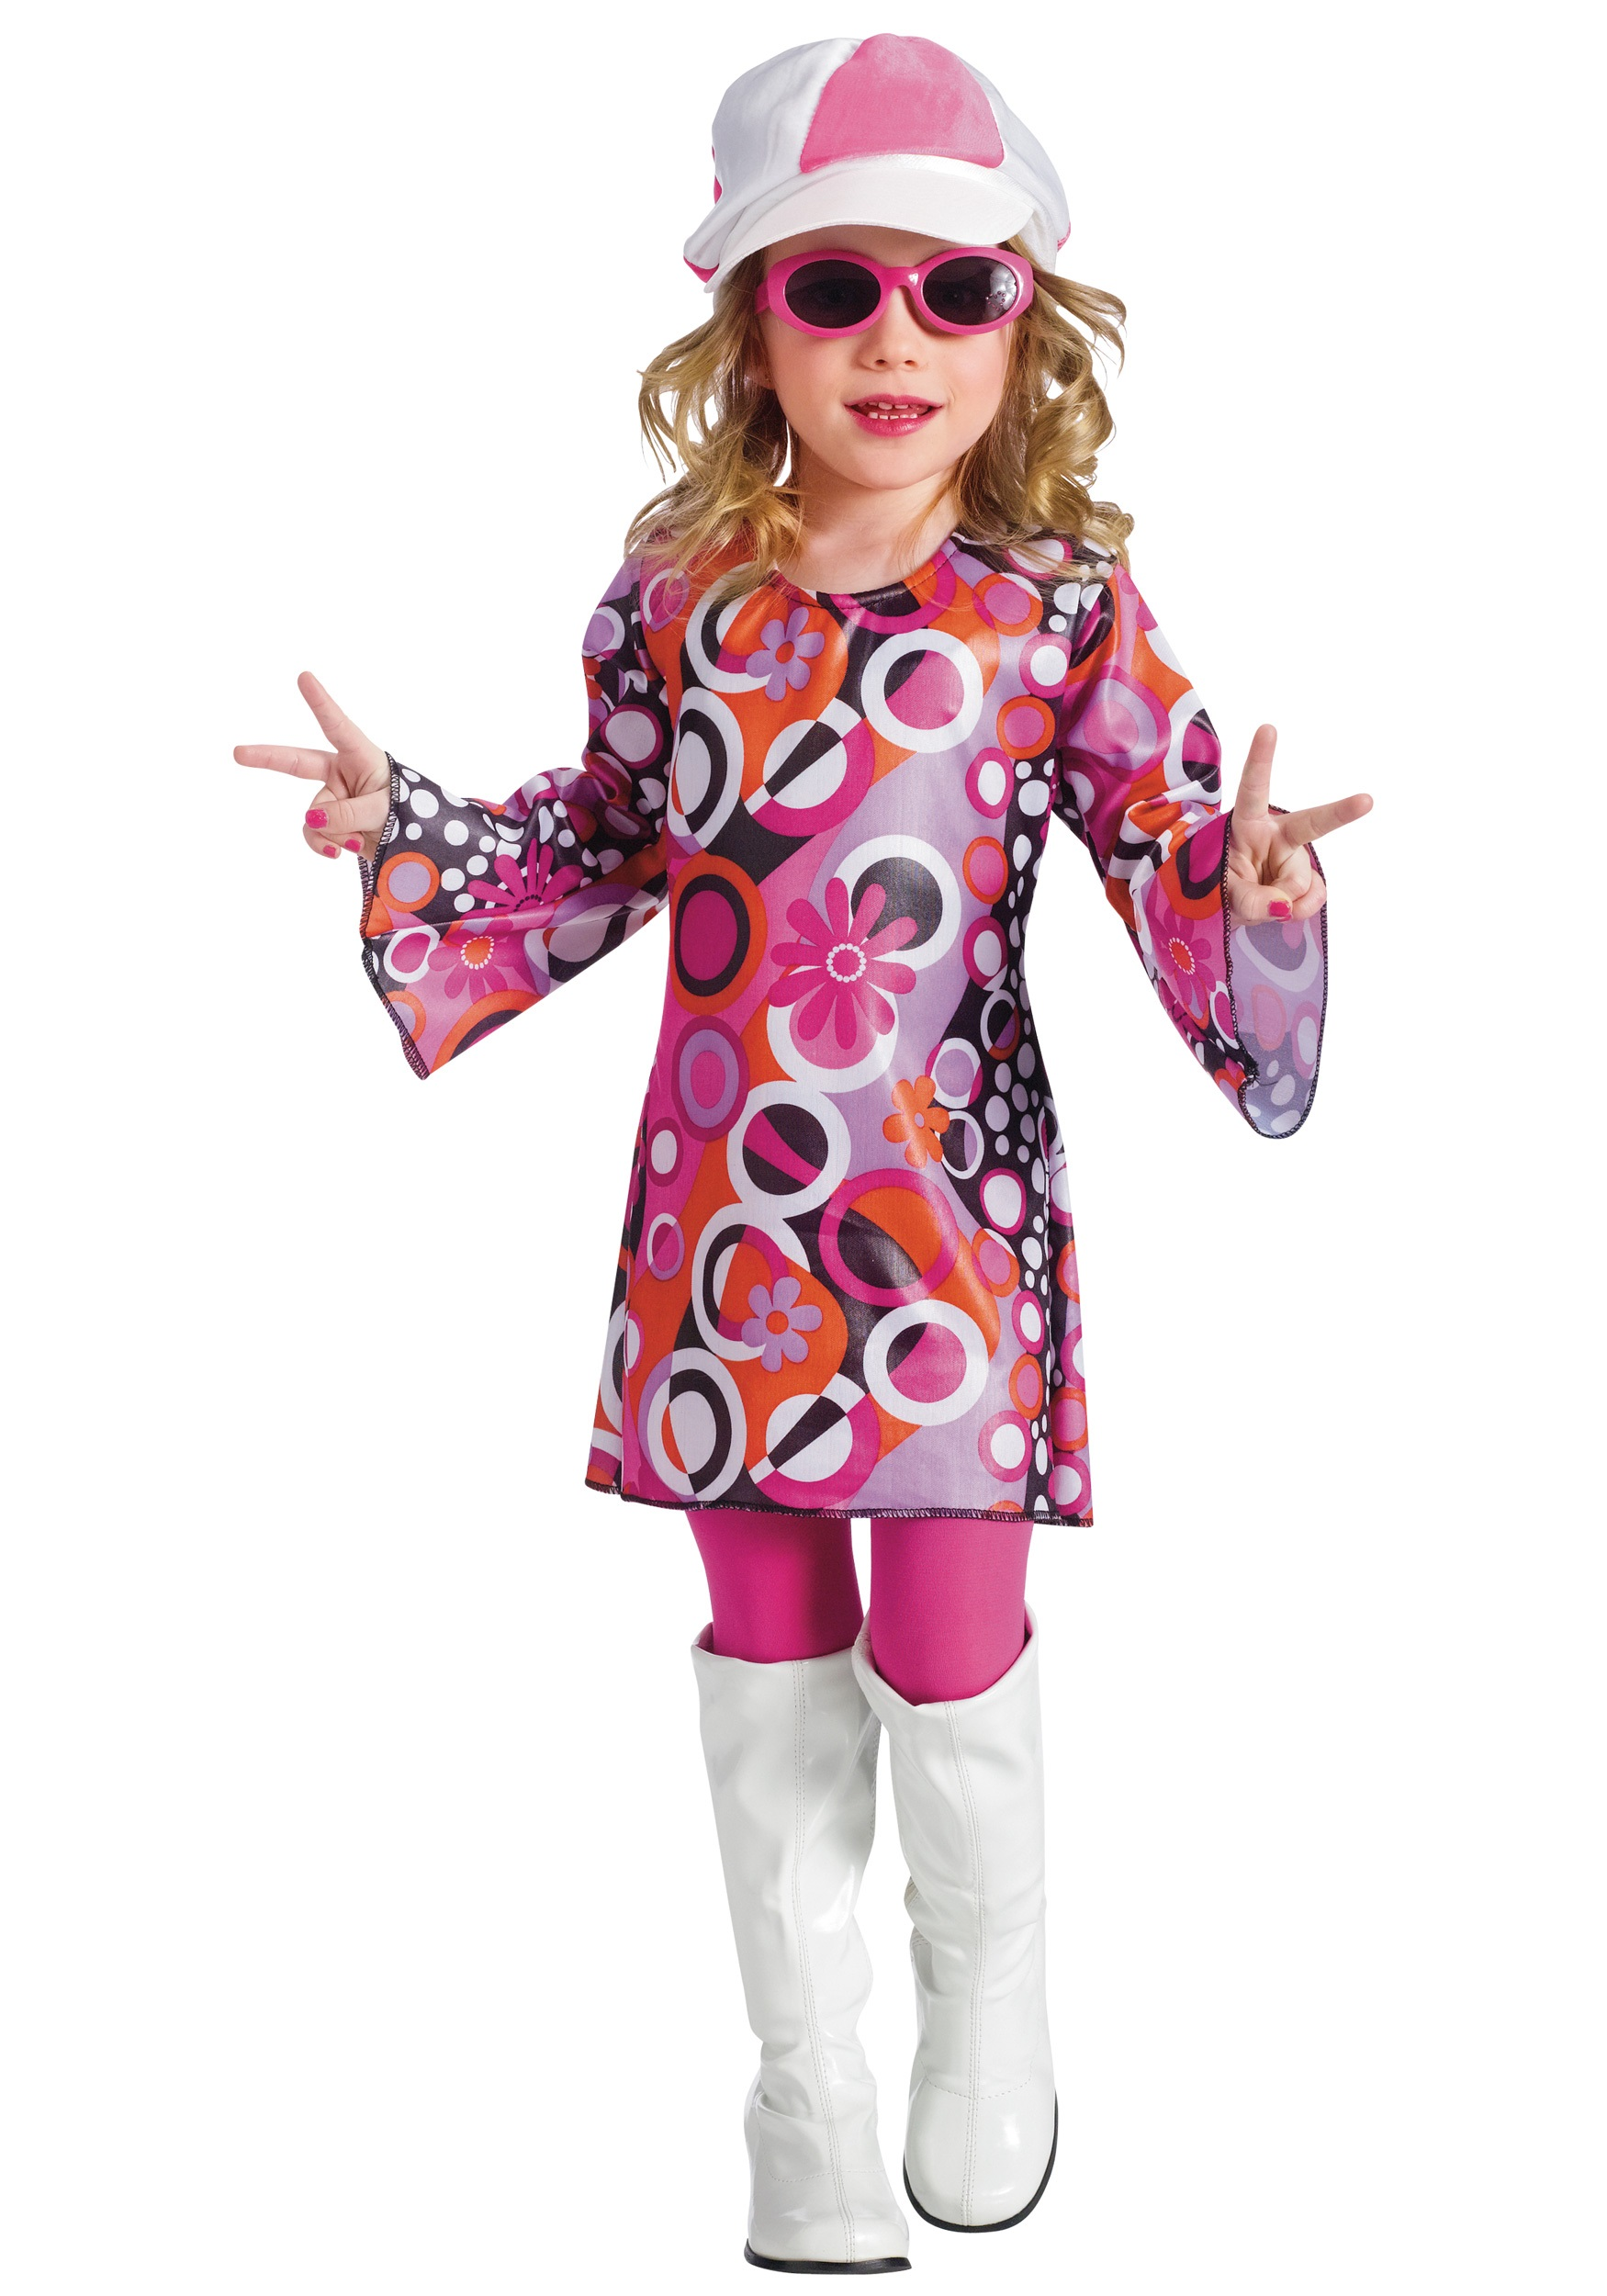 Toddler Feelin Groovy Dress  sc 1 st  Halloween Costumes & Toddler Feelin Groovy Dress - Halloween Costumes